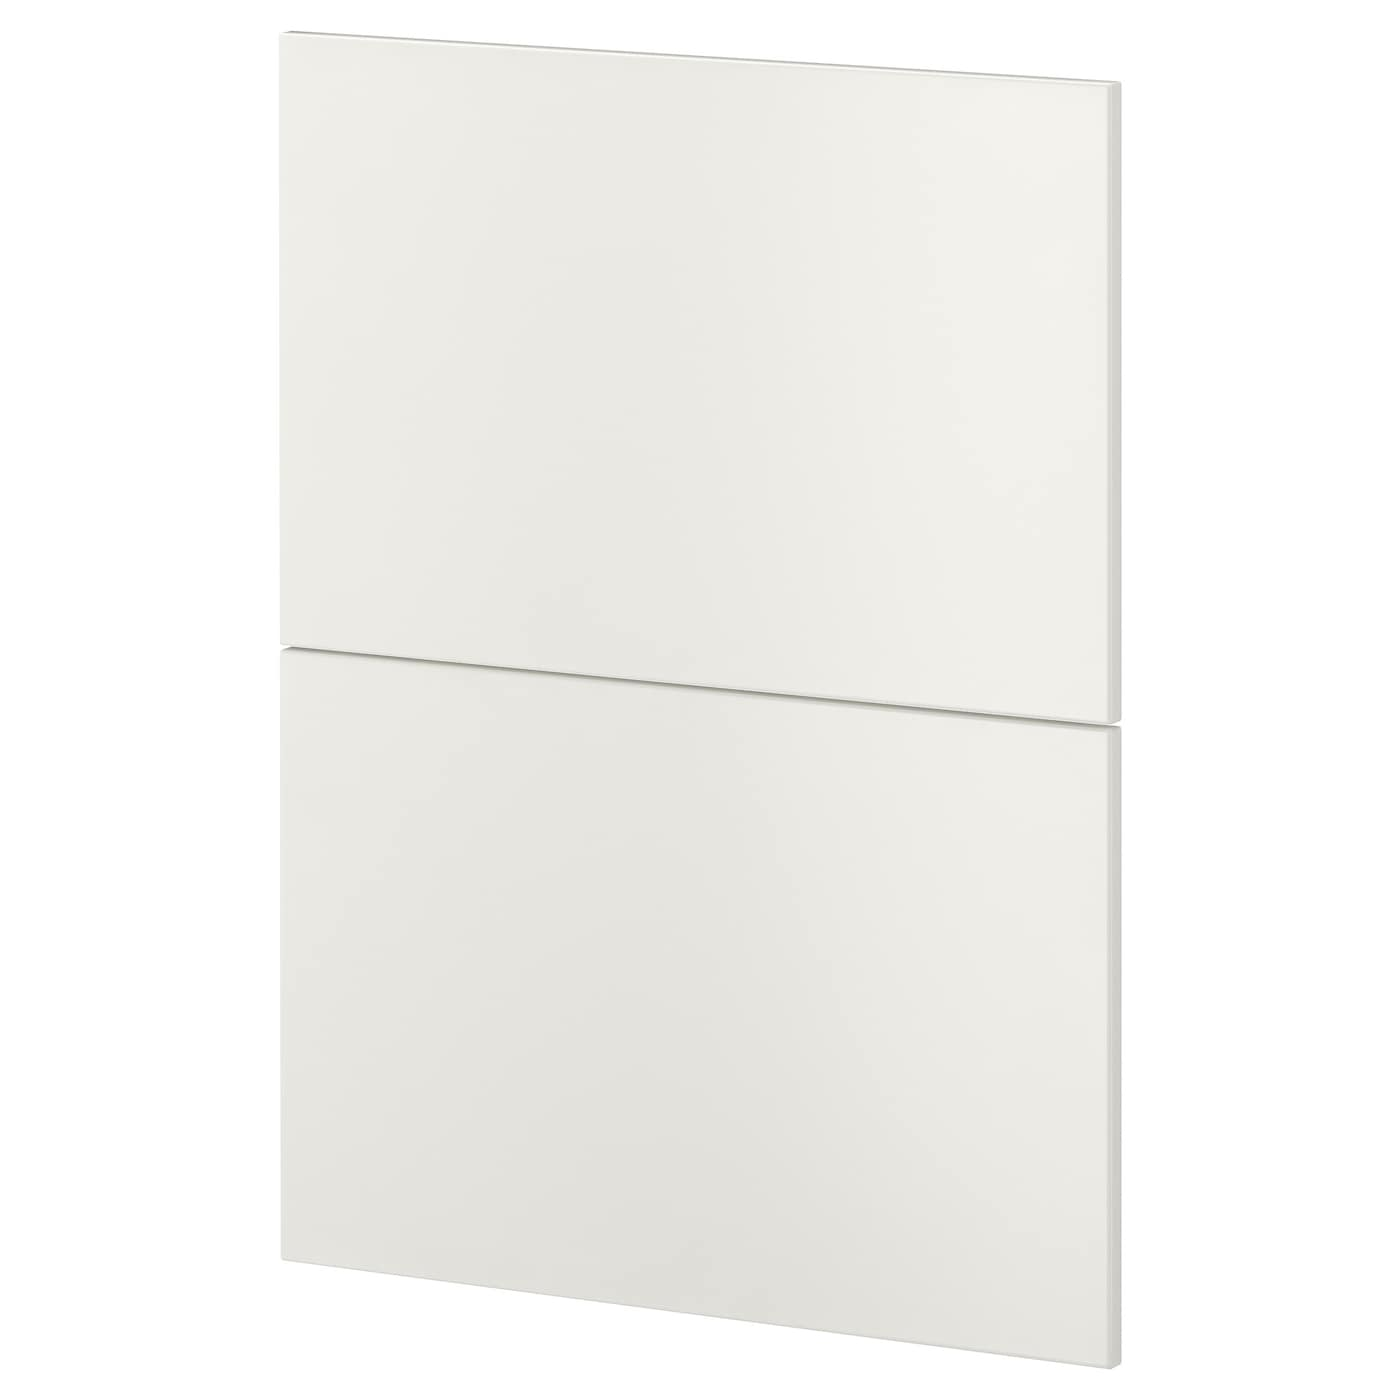 IKEA METOD 2 fronts for dishwasher